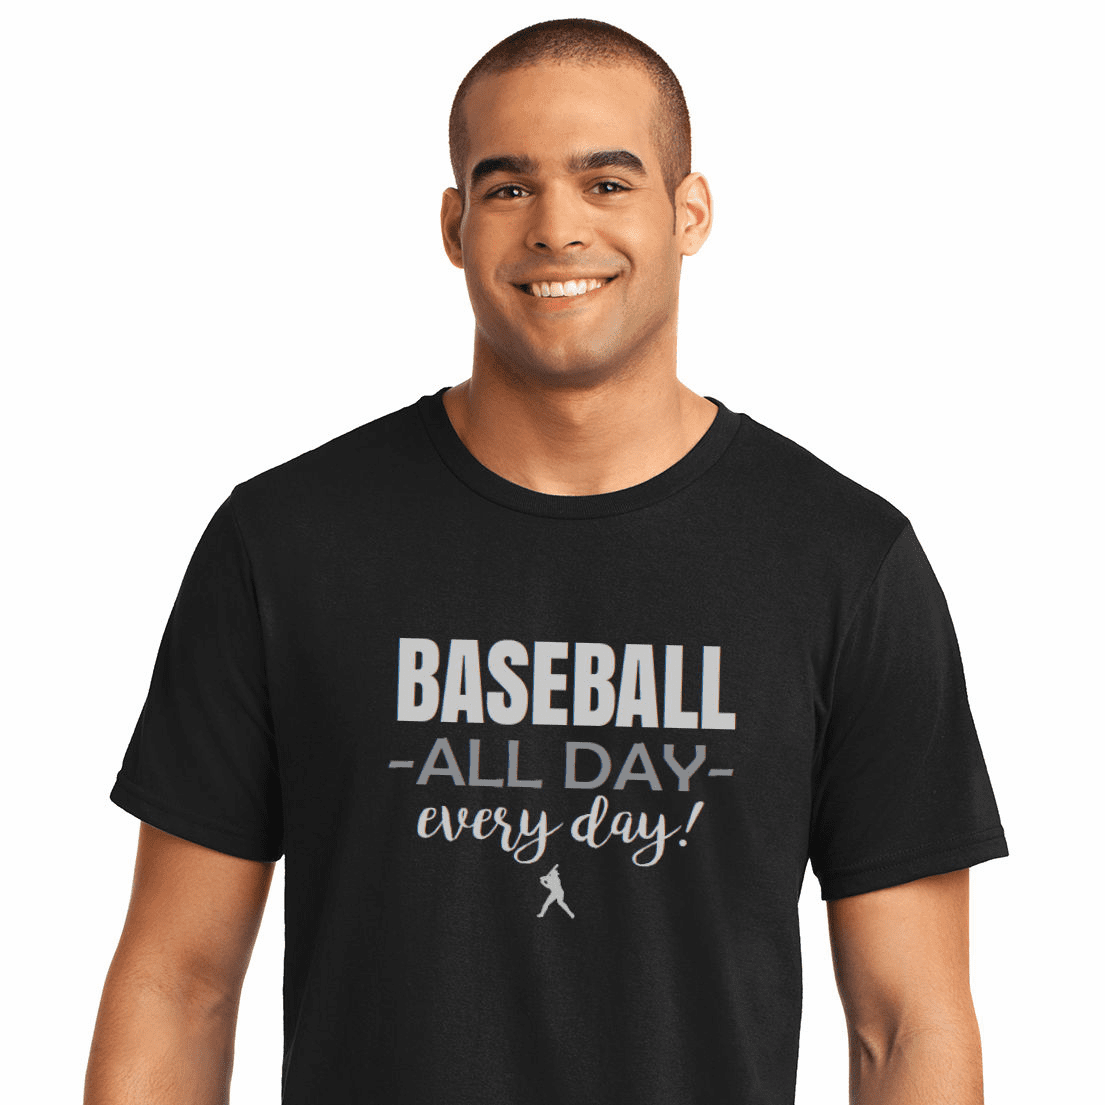 Baseball All Day Every Day T-Shirt<br>Choose Your Color<br>Youth Med to Adult 4X